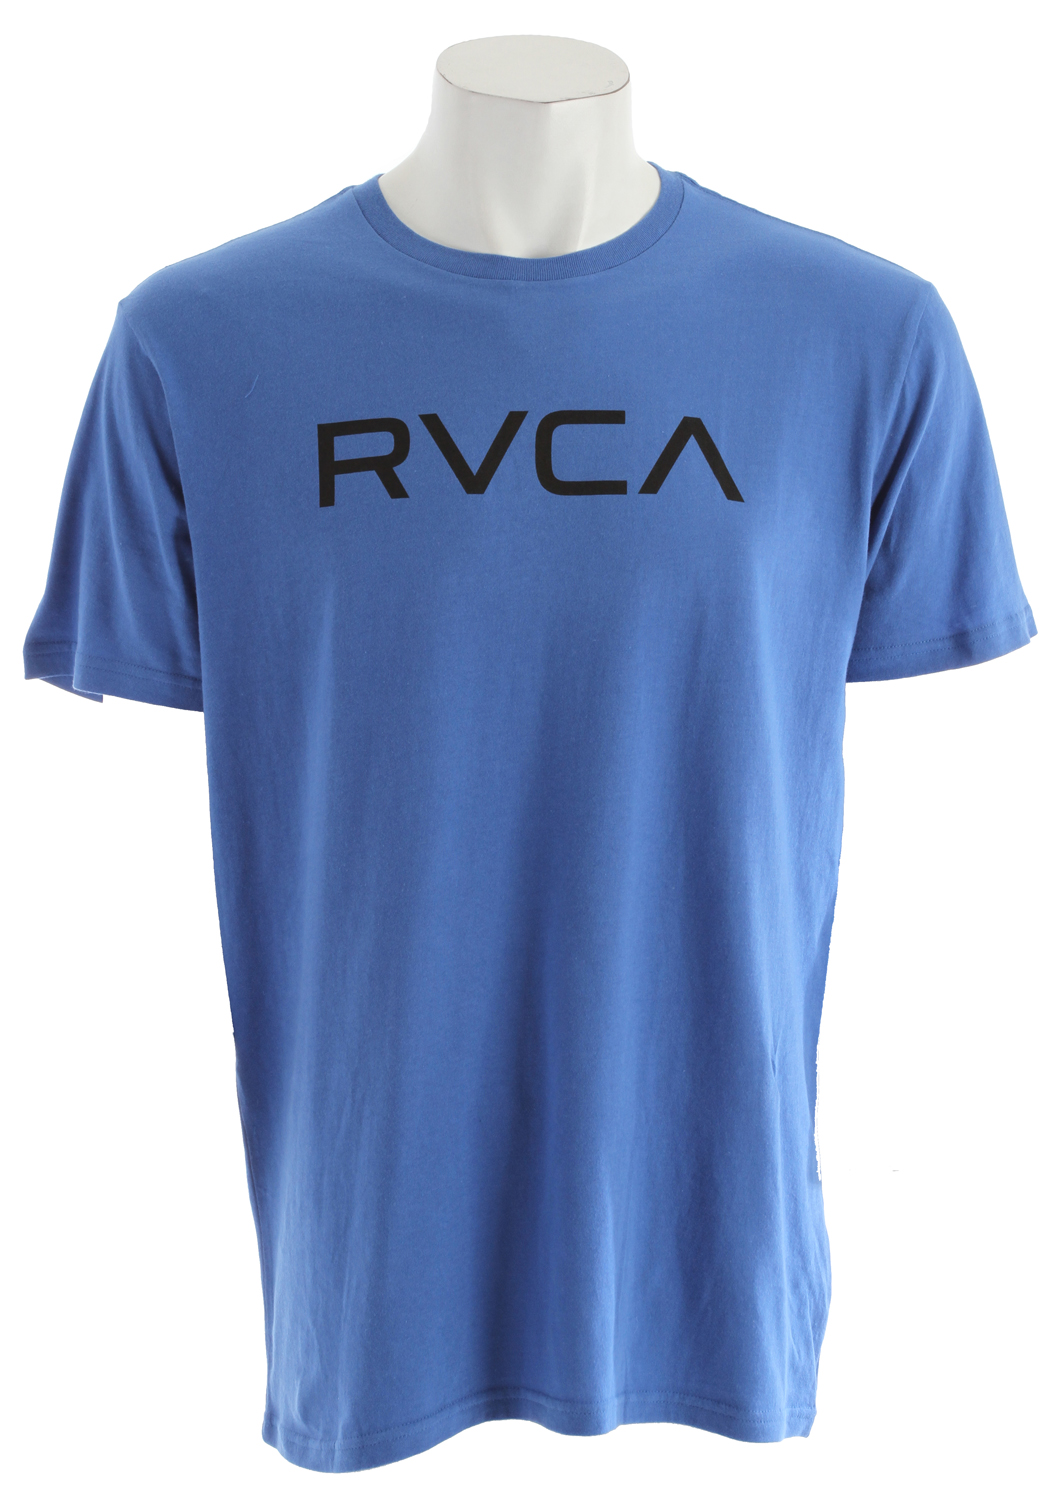 Sports Key Features of The RVCA Big RVCA Raglan Shirt White/Black: Regular Fit Crew Neck Raglan 30/1 100% cotton baseball raglan Front screenprint and screened inside neck - $14.95